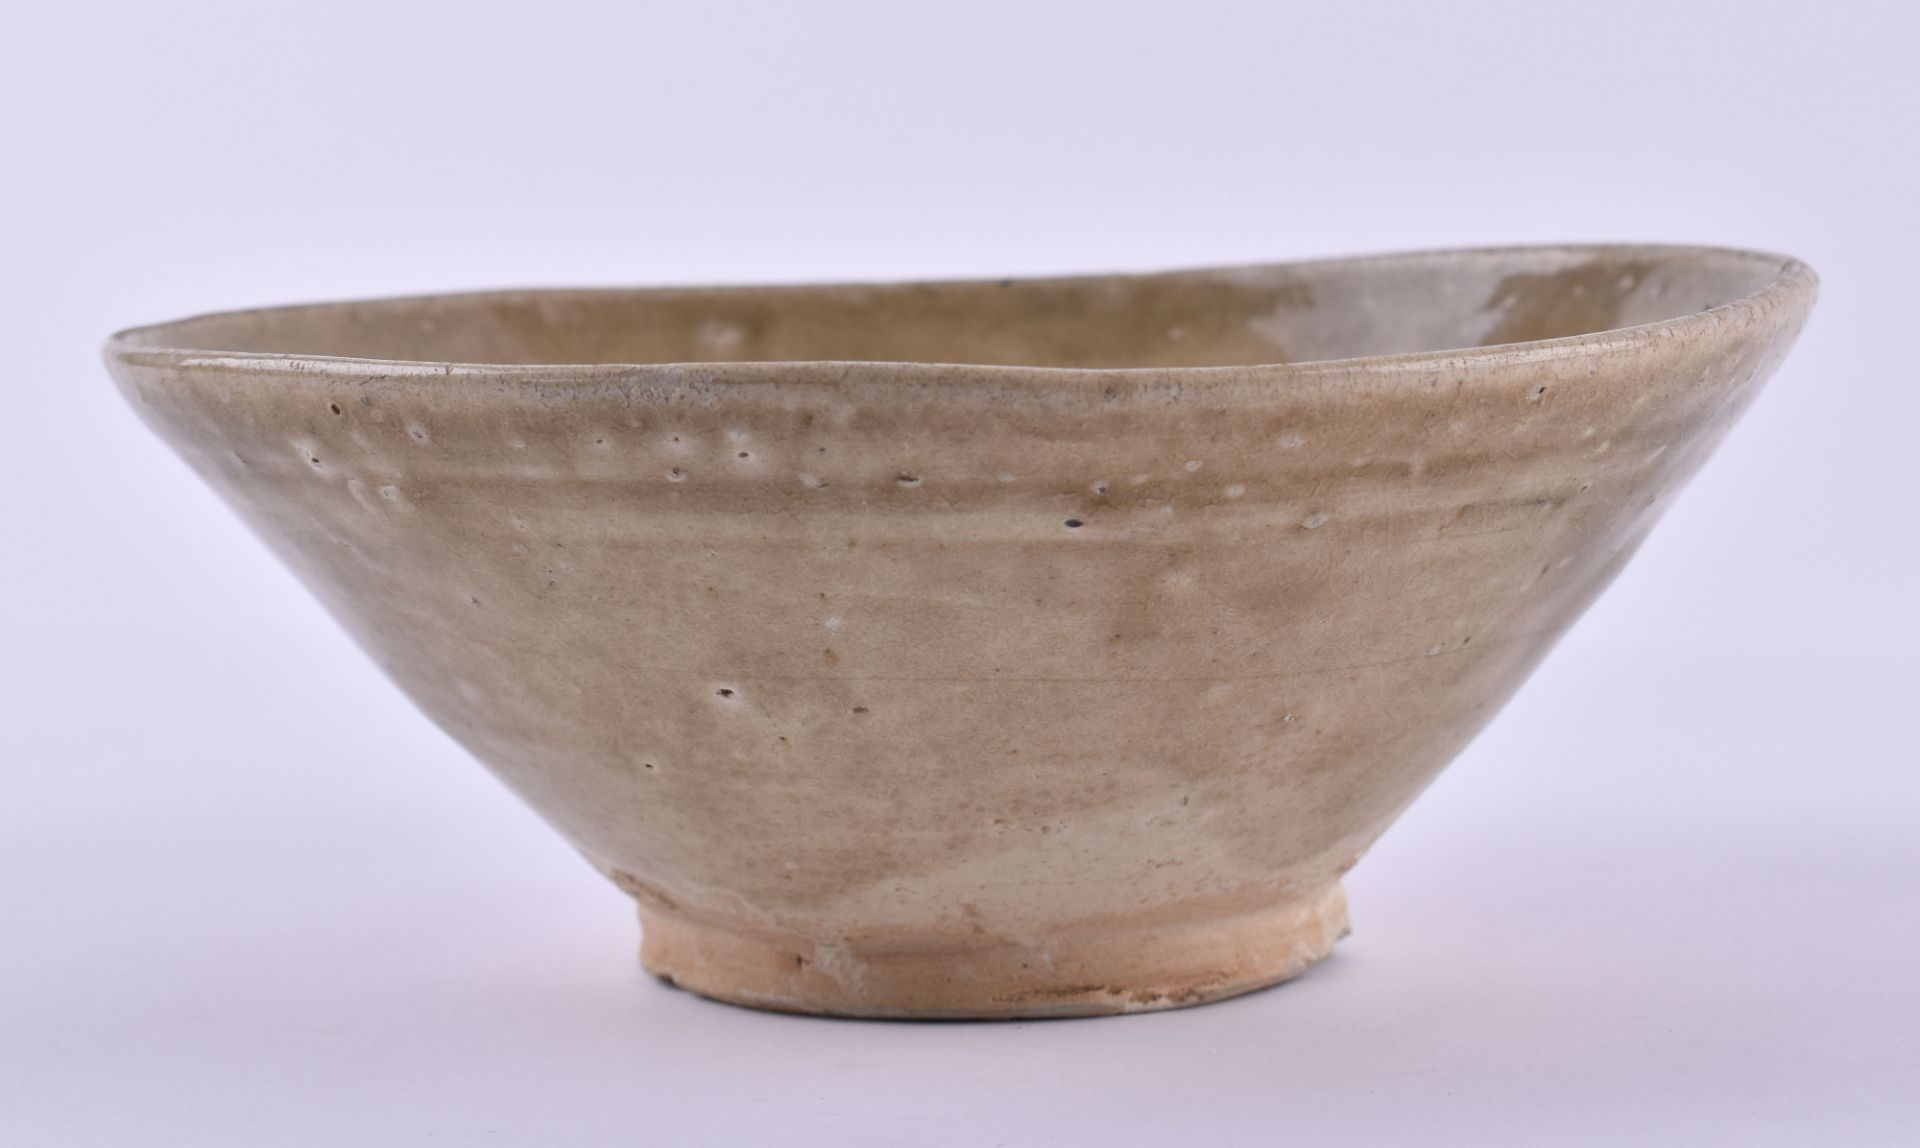 Bowl Vietnam Tran dynasty 12th-14th century - Image 2 of 5